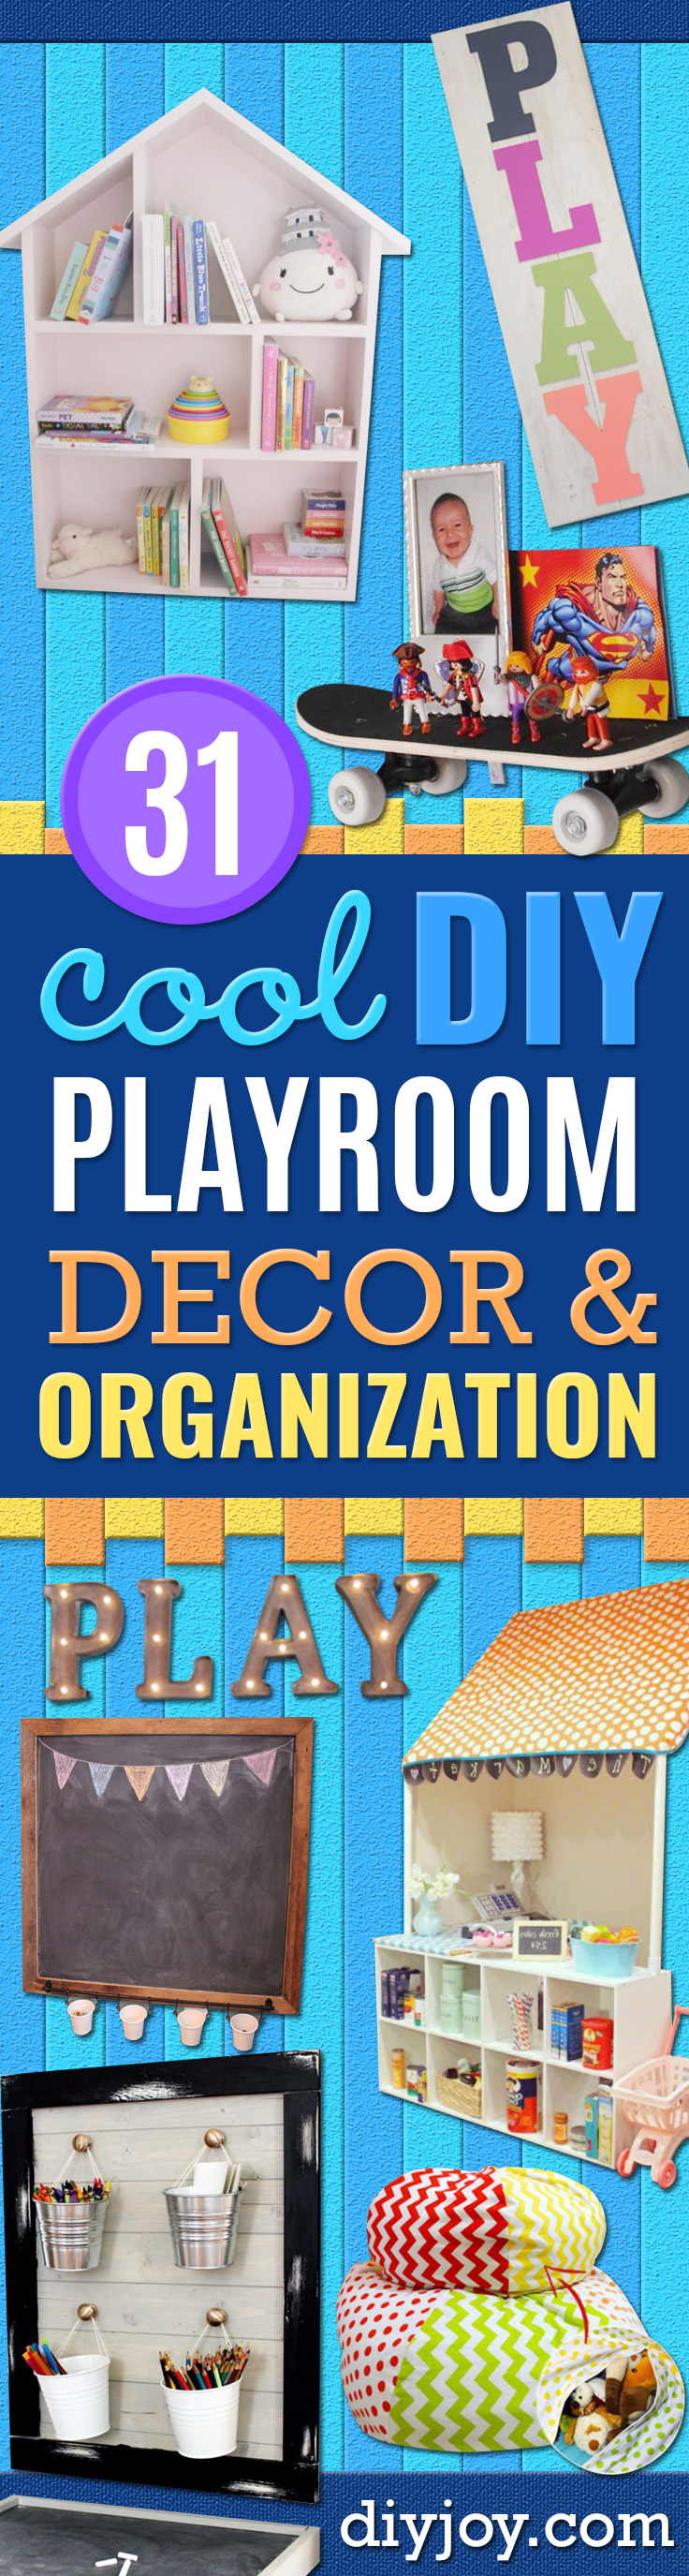 DIY Playroom Ideas and Furniture - Easy Play Room Storage, Furniture Ideas for Kids, Playtime Rugs and Activity Mats, Shelving, Toy Boxes and Wall Art - Cute DIY Room Decor for Boys and Girls - Fun Crafts with Step by Step Tutorials and Instructions http://diyjoy.com/diy-playroom-ideas